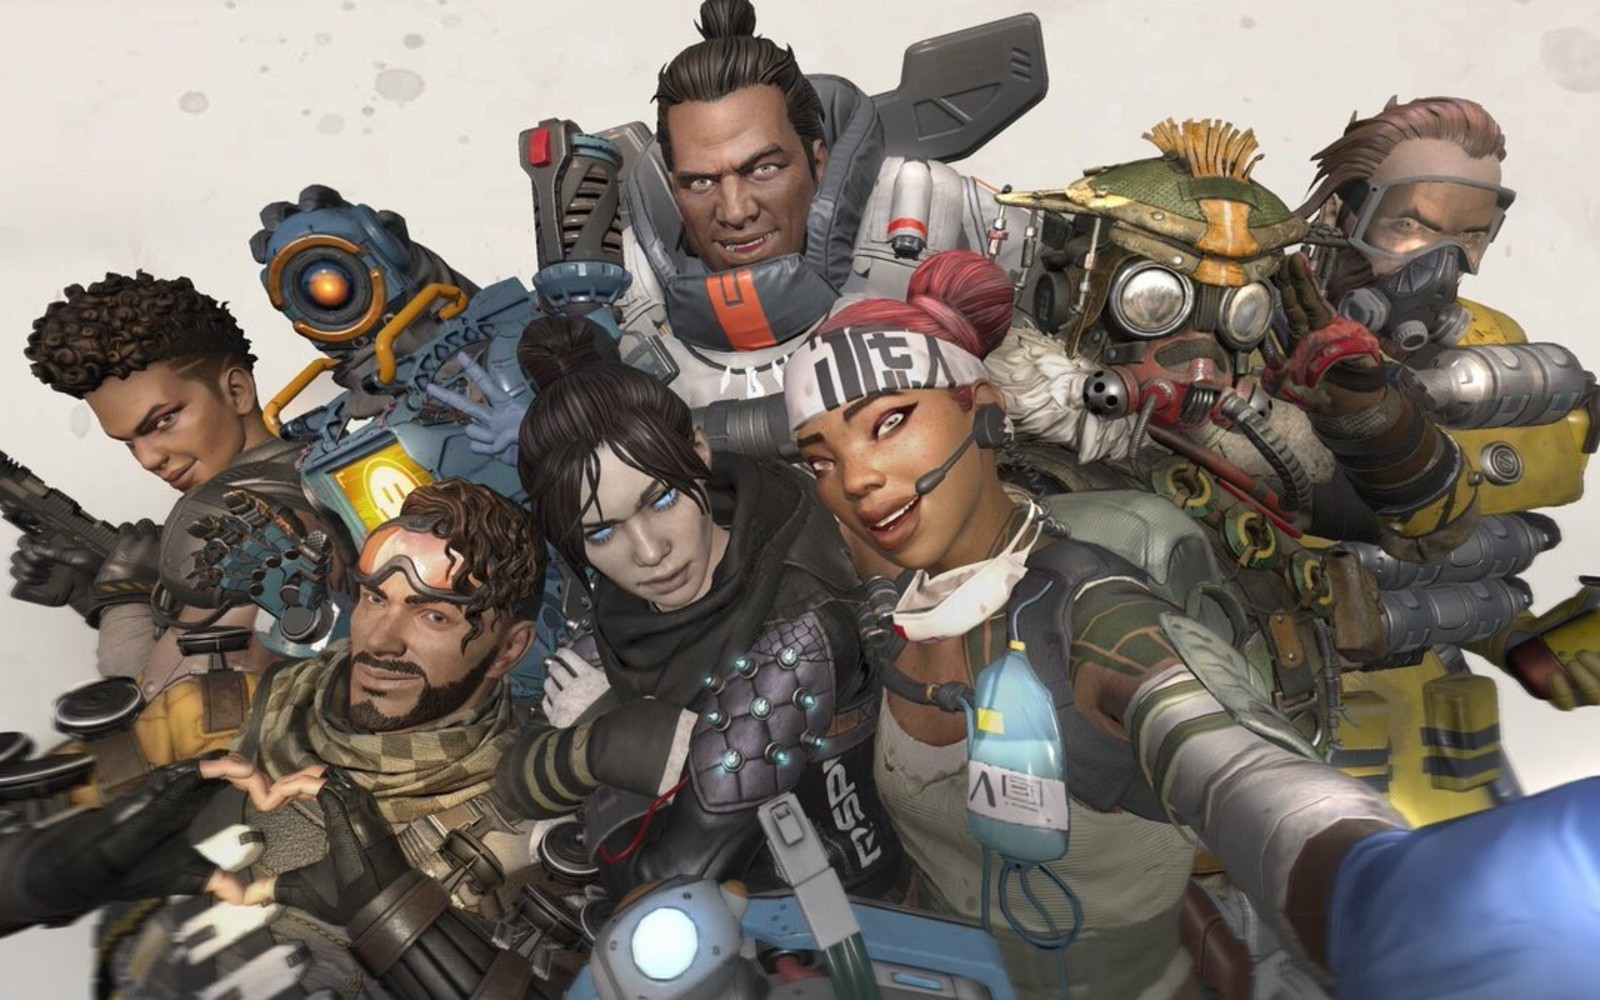 'Apex Legends' has 100 million players after two years, The Gamers Dreams, thegamersdreams.com